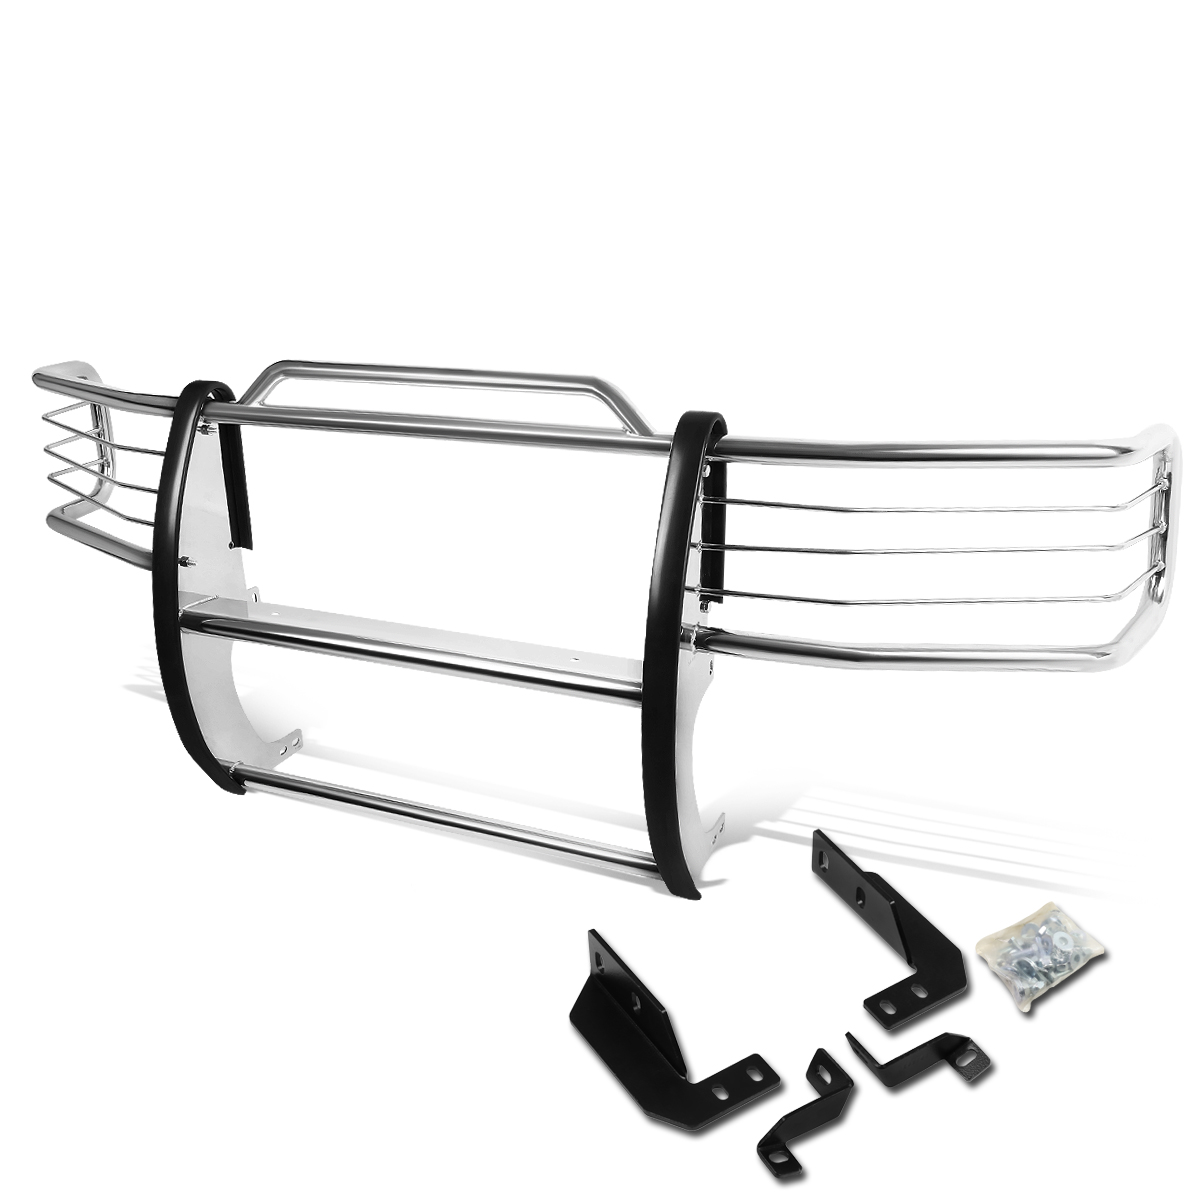 96 Ford F150 Accessories Photos 1980 Truck Brush Guards 92 F350 Pickup Front Per Protector Grille